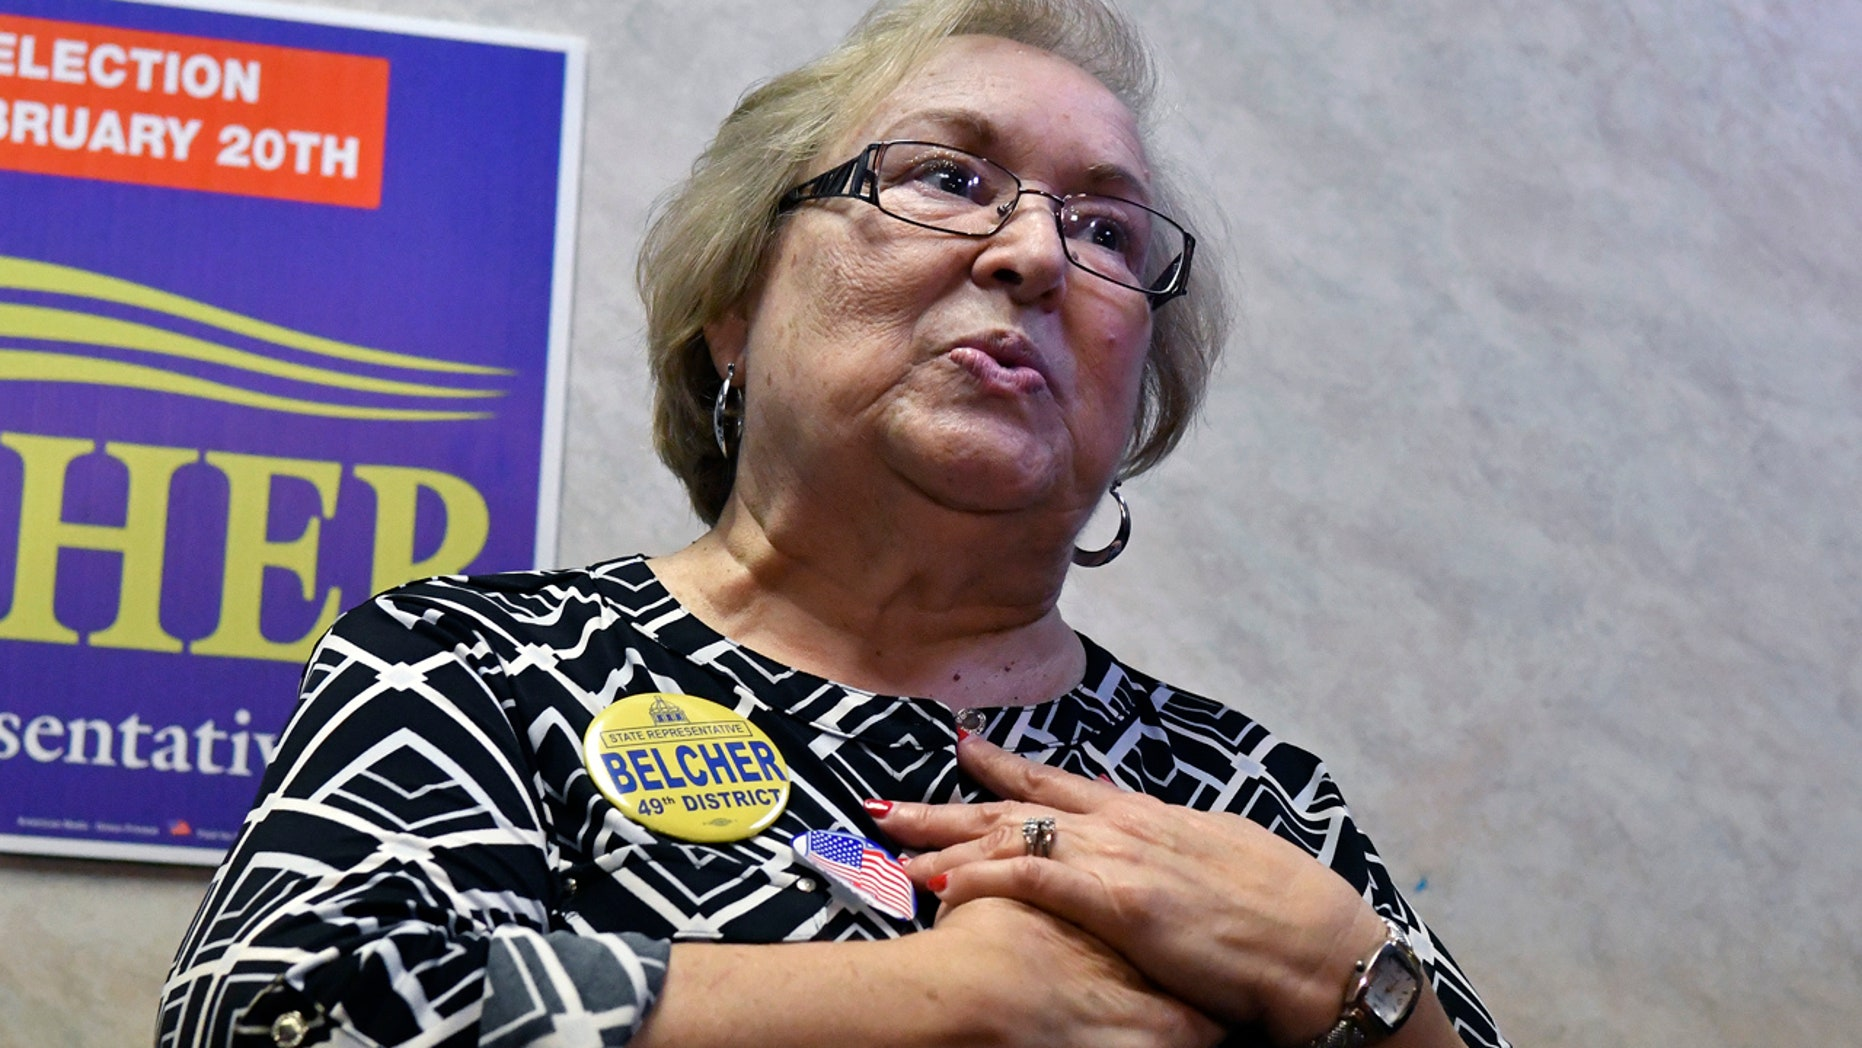 Democrat Linda Belcher thanks her supporters following her victory in Tuesday's special election.